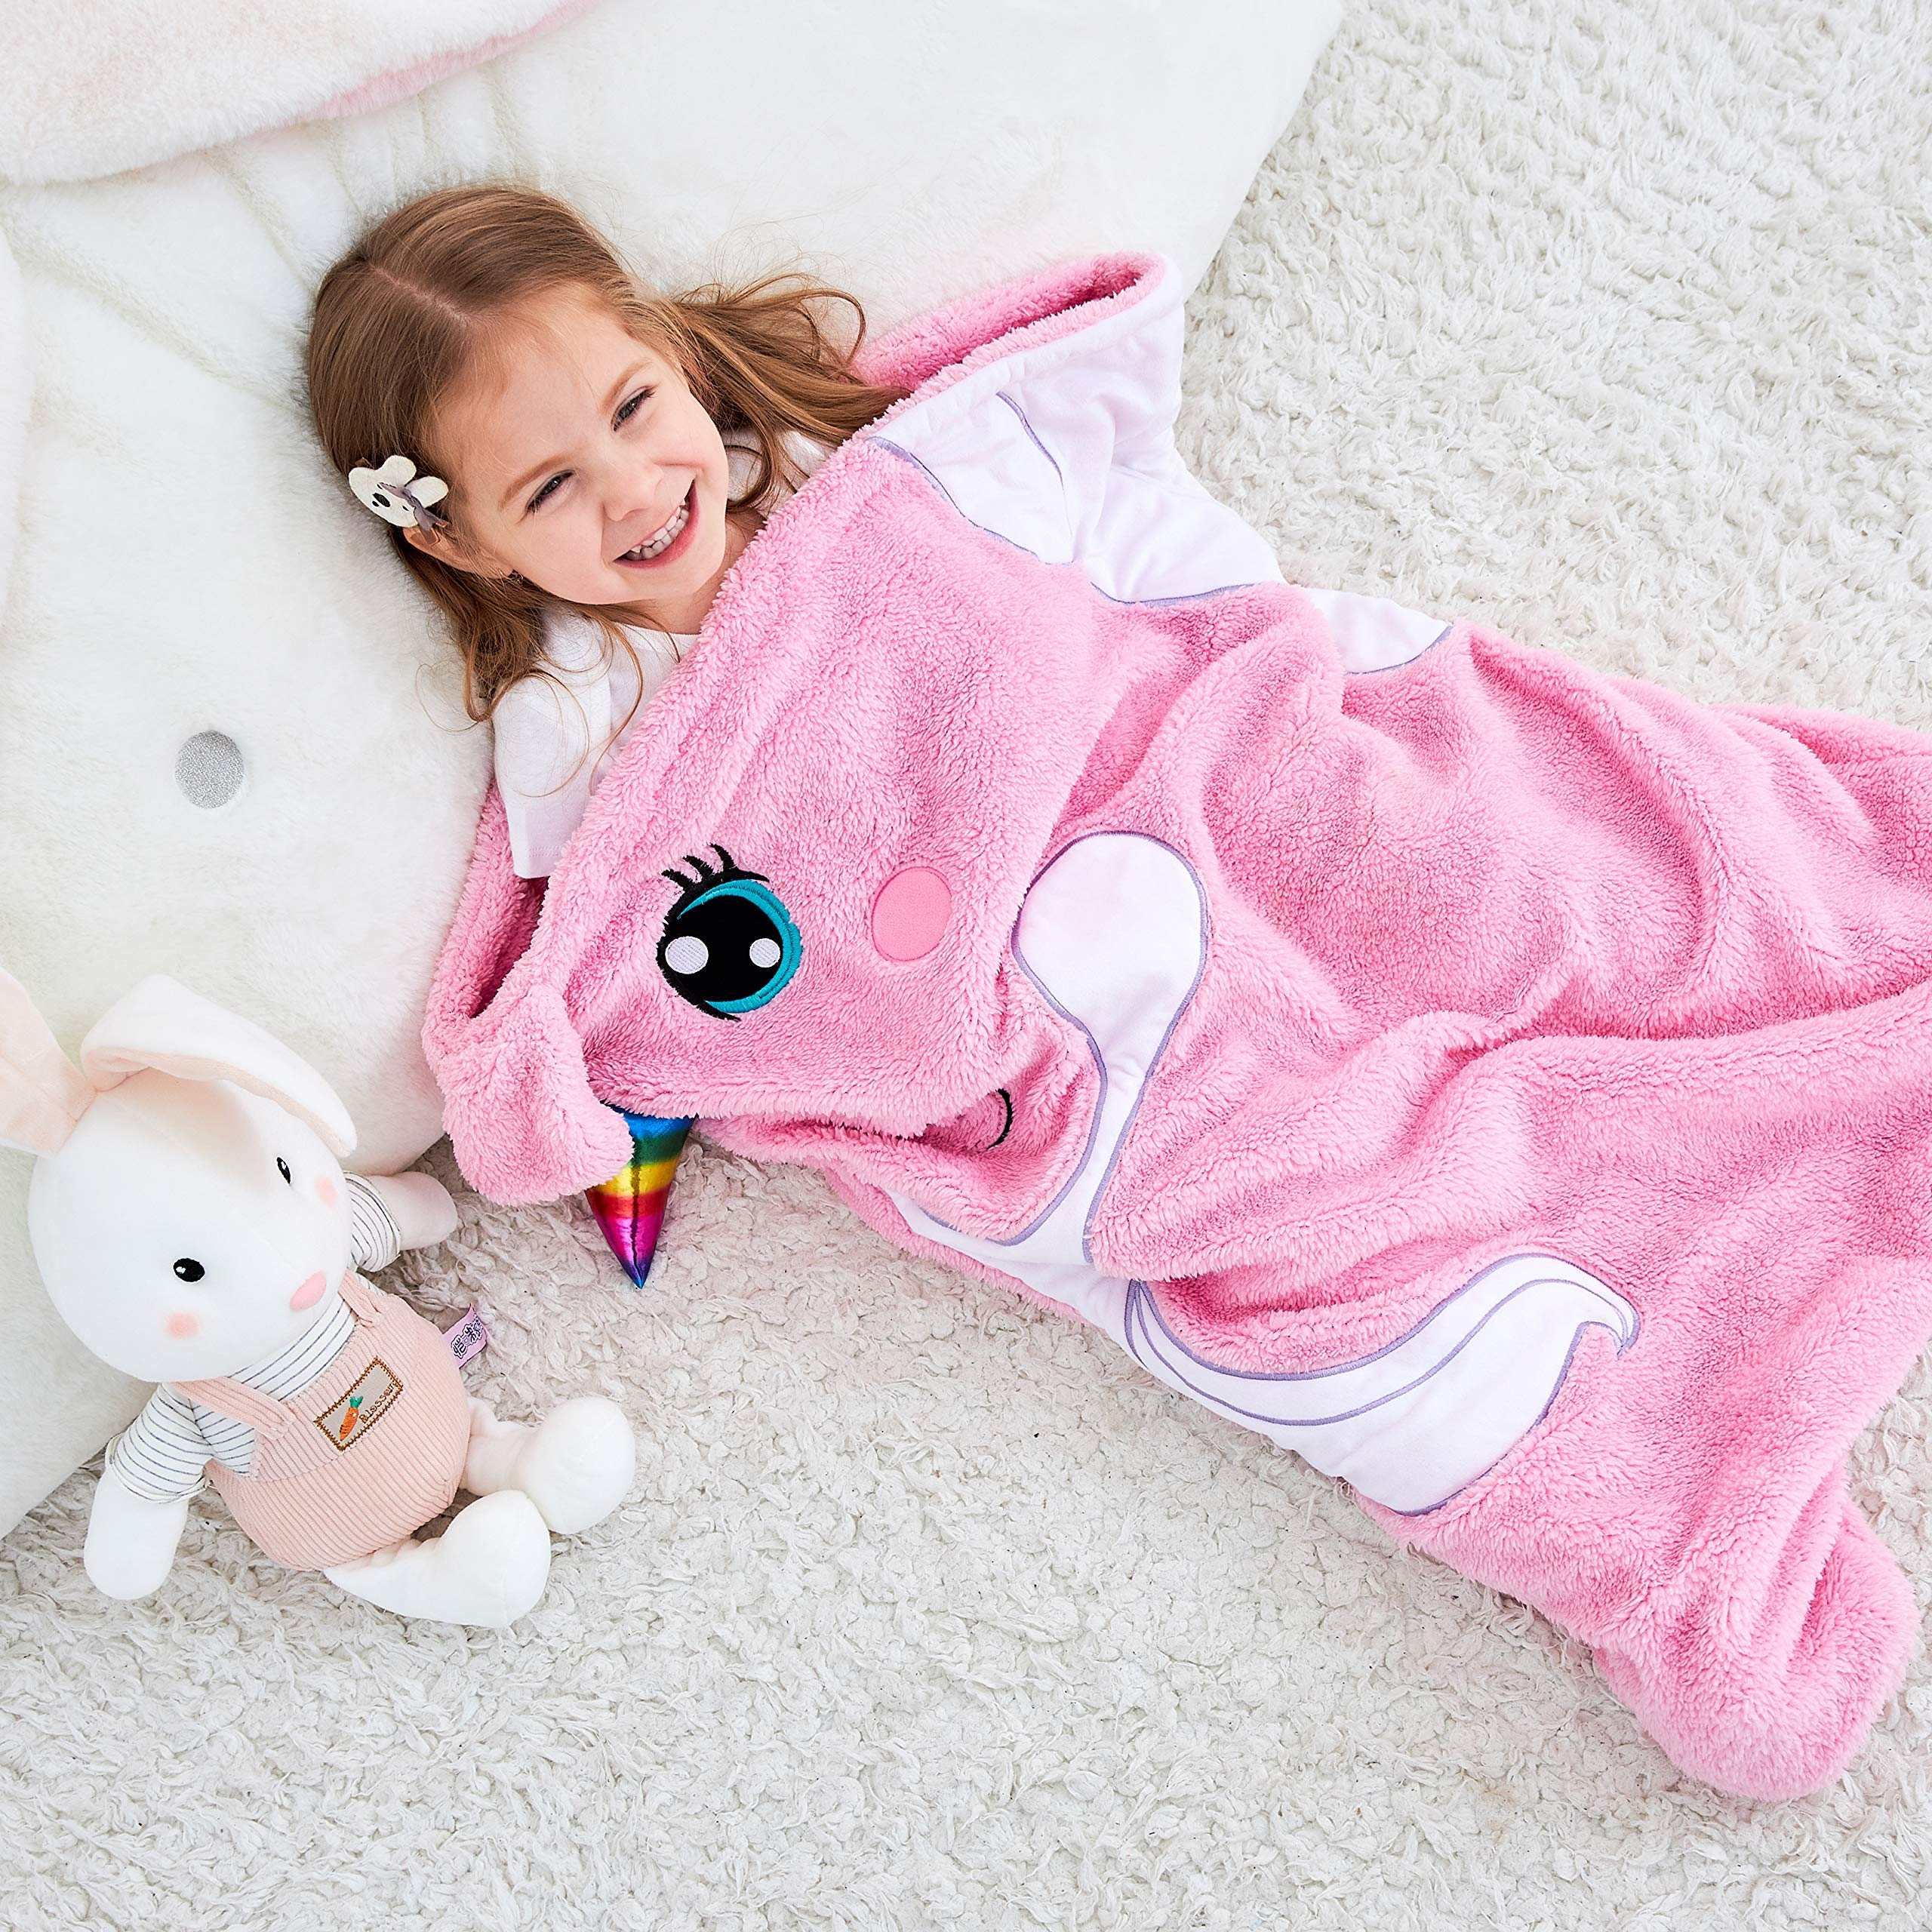 SINOGEM Unicorn Blanket for Kids Animal Sleeping Bag Gifts for Girls Cute Throw Blanket for Bed Couch Travel Sleepovers Outdoor Animal Plush Toy 27 Inch by 36 Inch Pink by SINOGEM